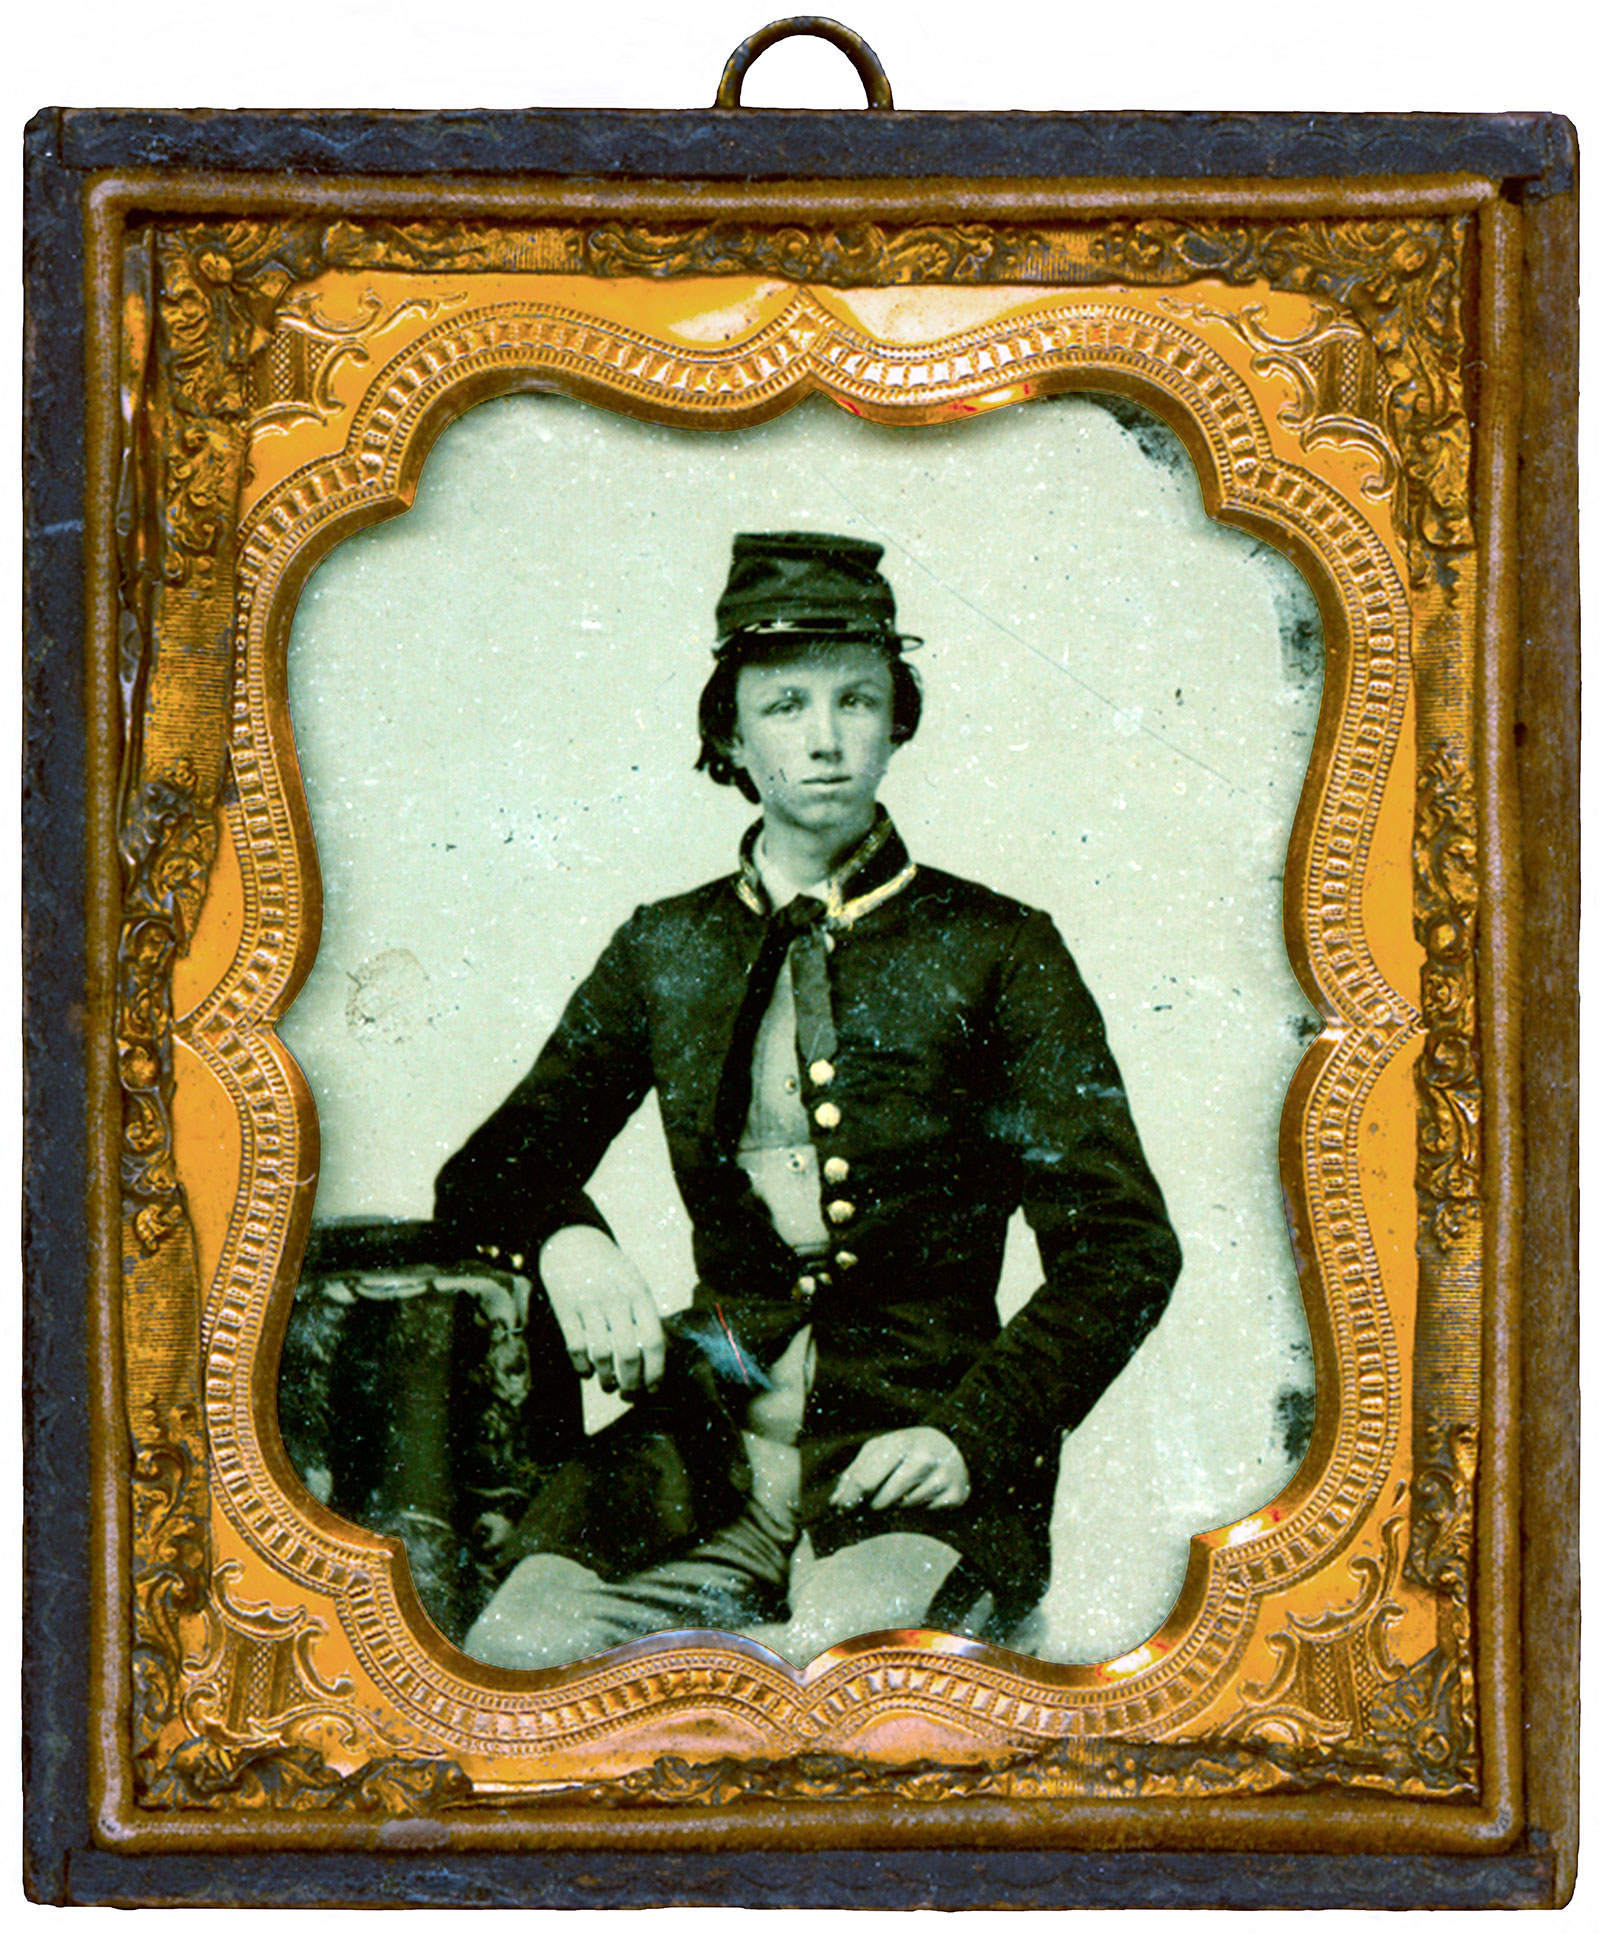 Quarter-plate ambrotype by an anonymous photographer. Courtesy of Citadel Archives, Charleston, S.C.